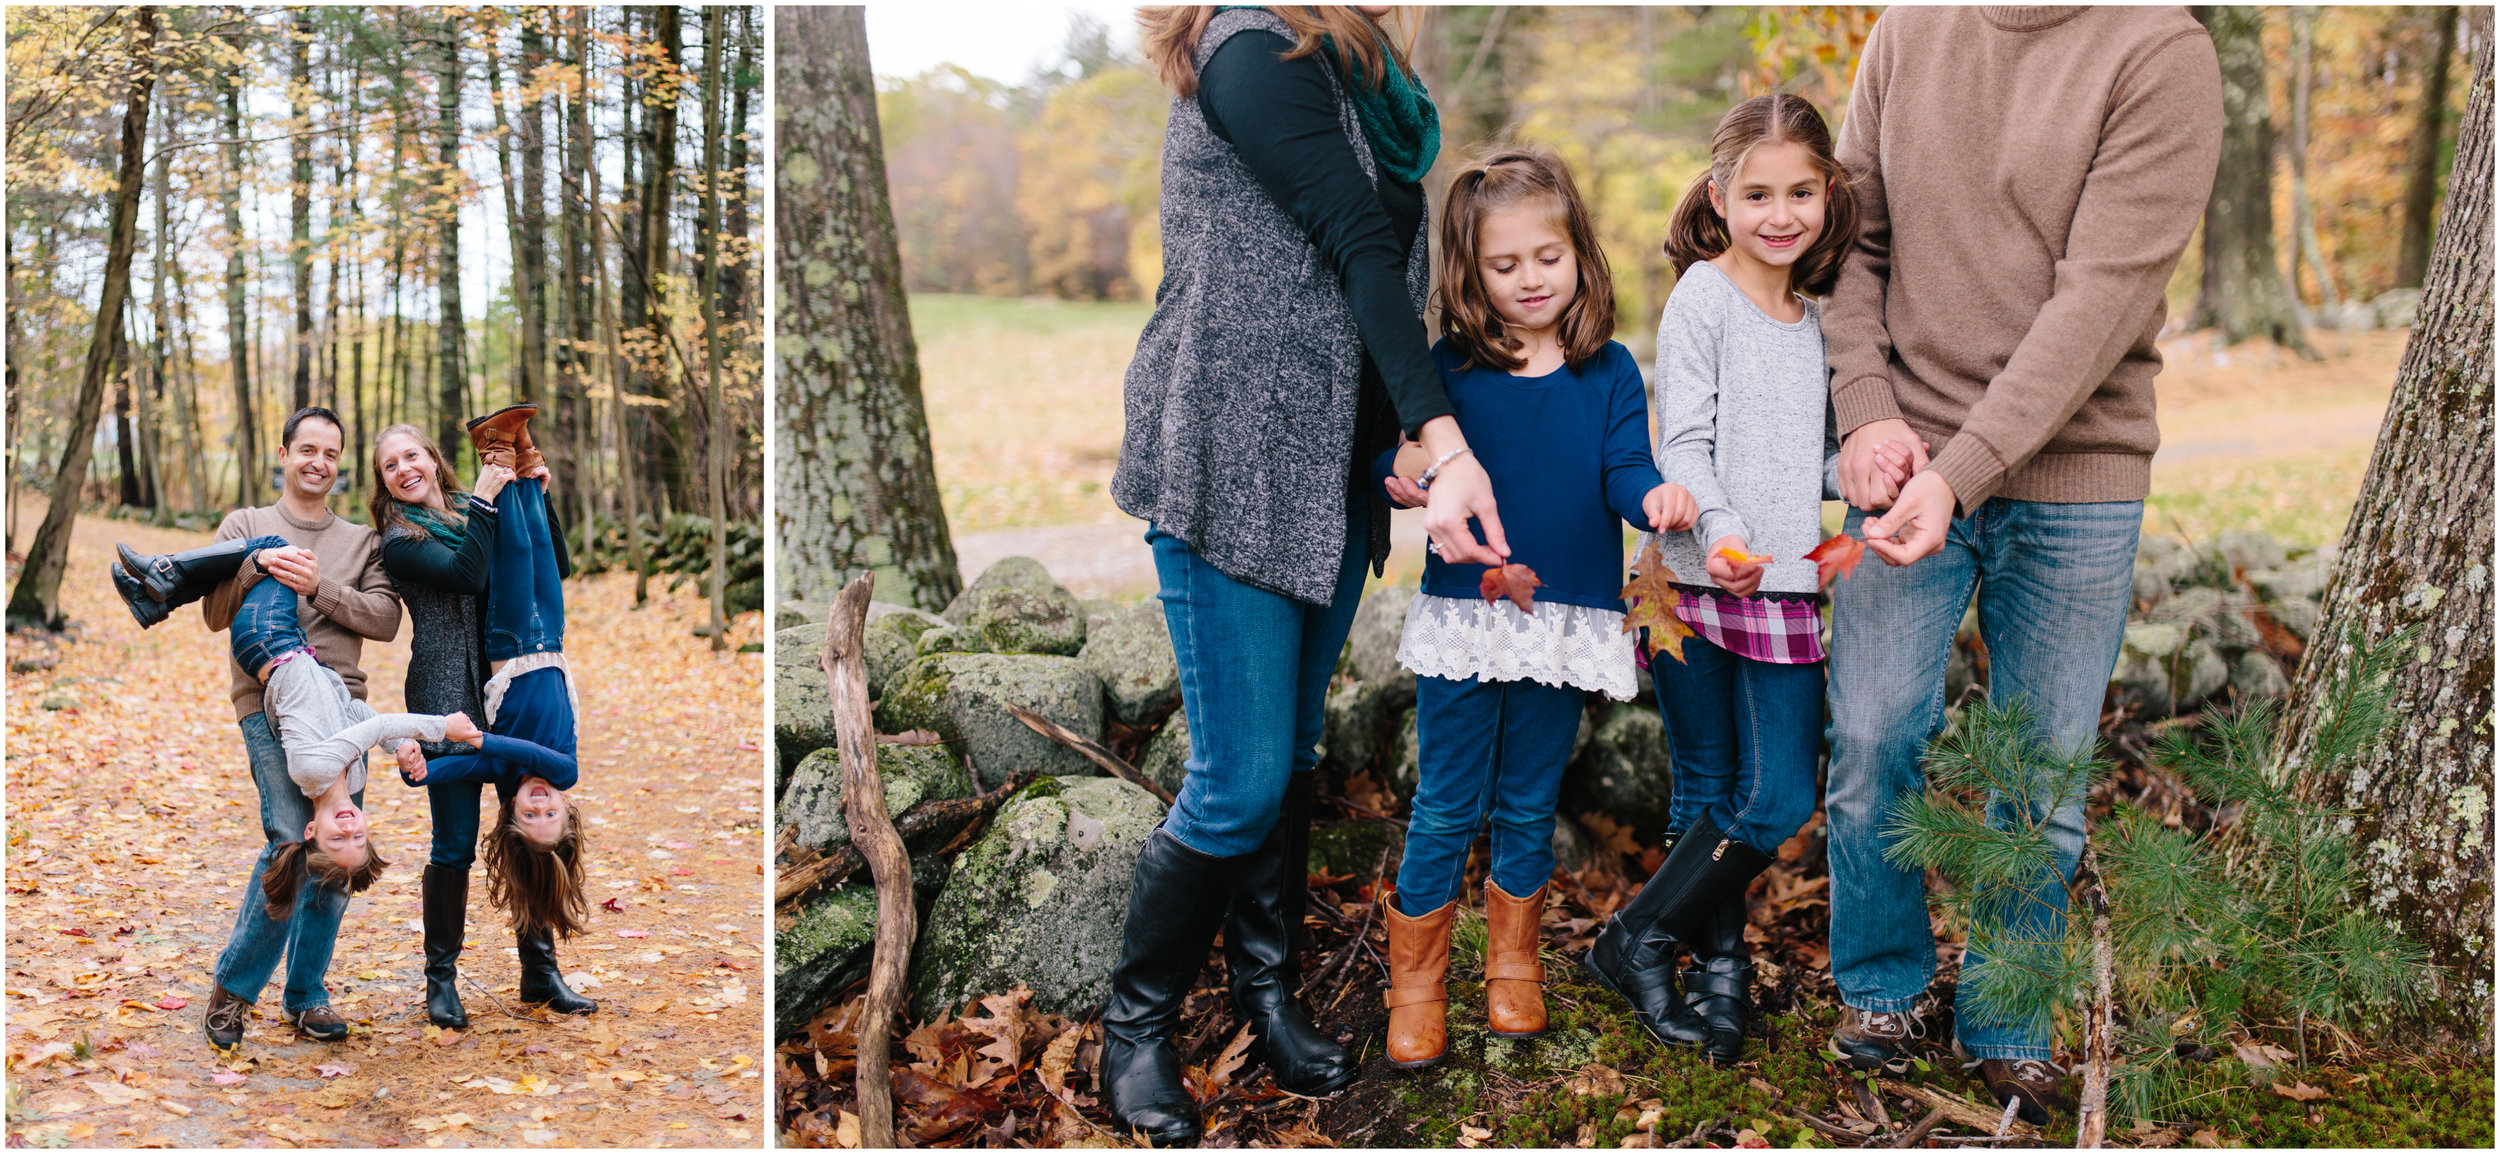 Fall autumn Monson Village Center family photography in Milford, New Hampshire funny